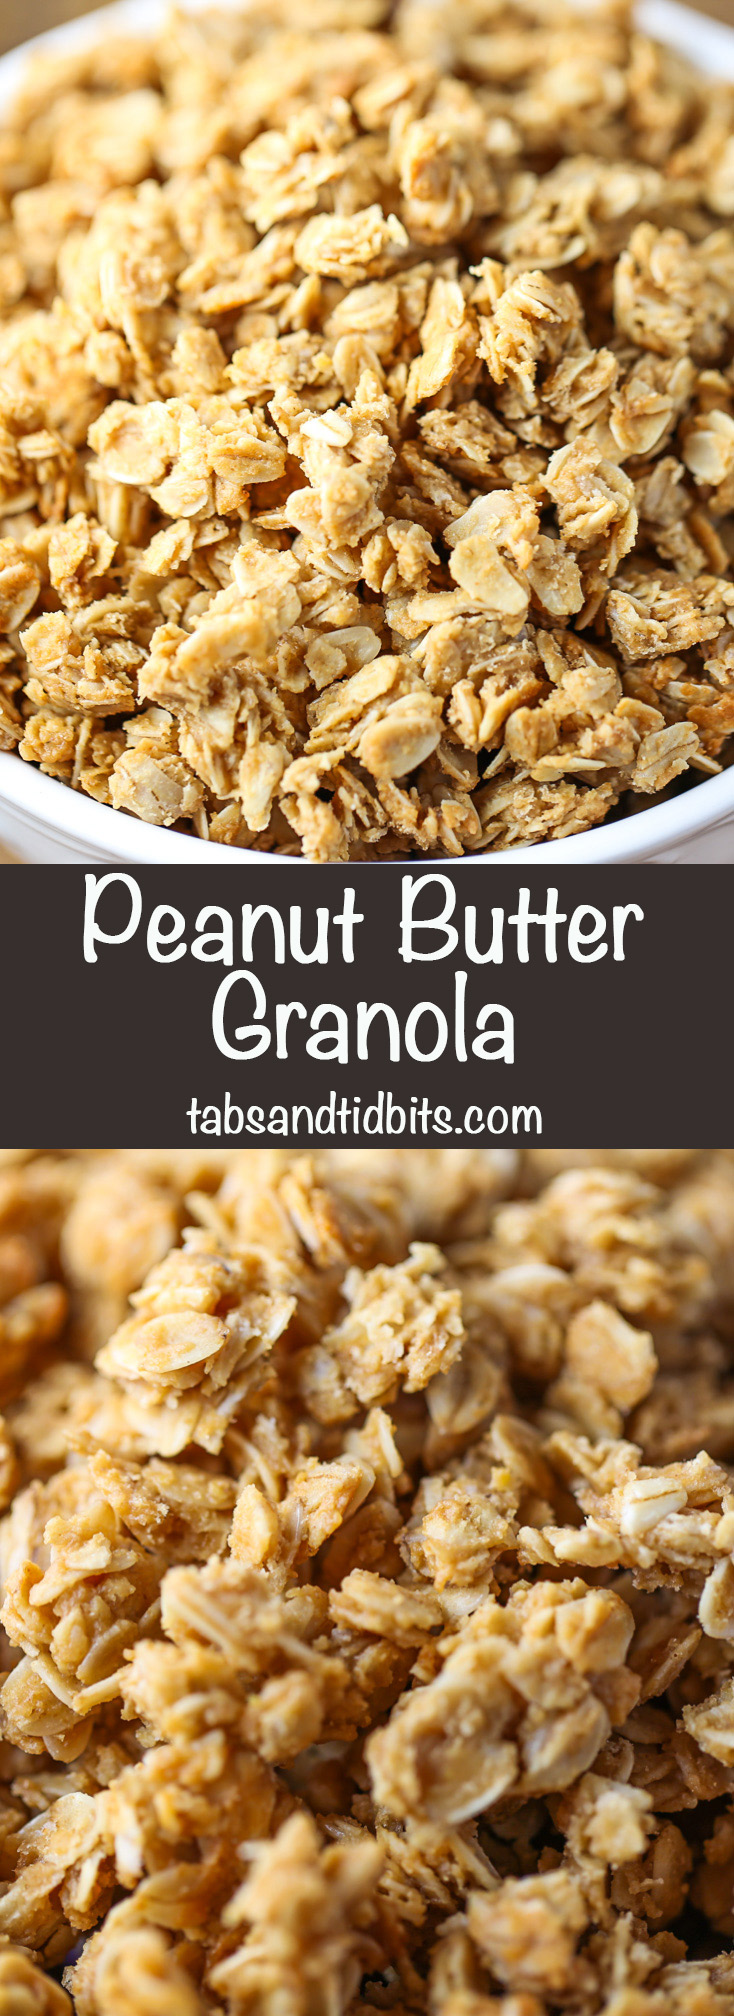 Peanut Butter Granola - Delicious and decadent peanut butter coated granola made with only 4 ingredients!